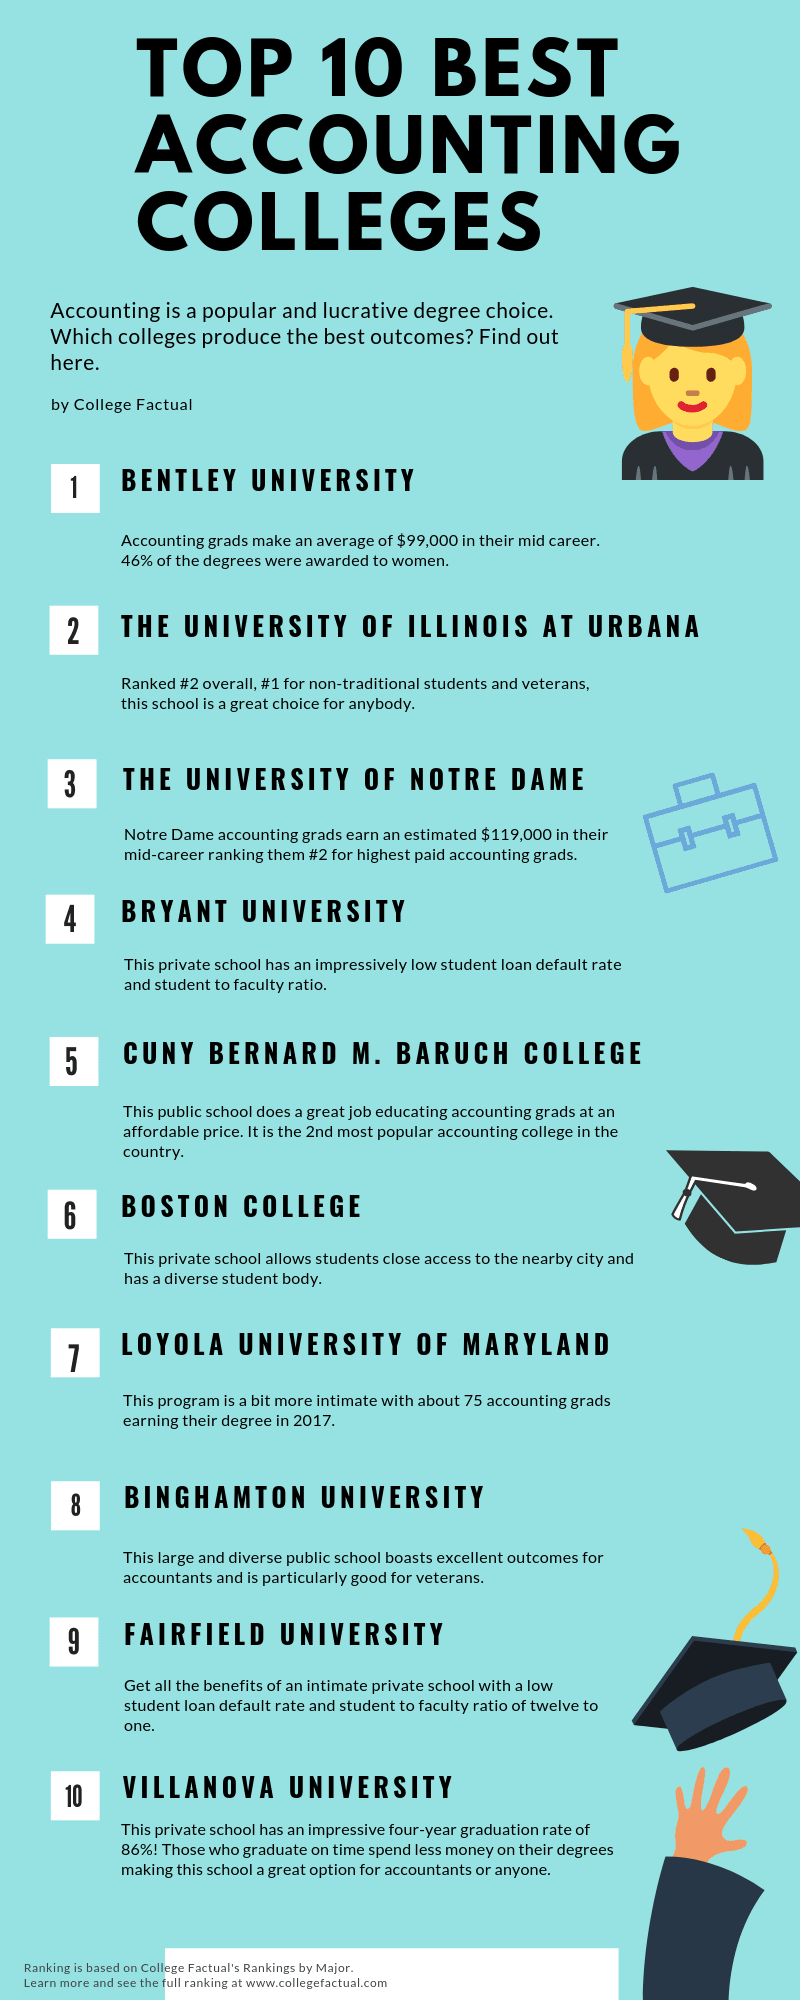 top 10 accounting colleges